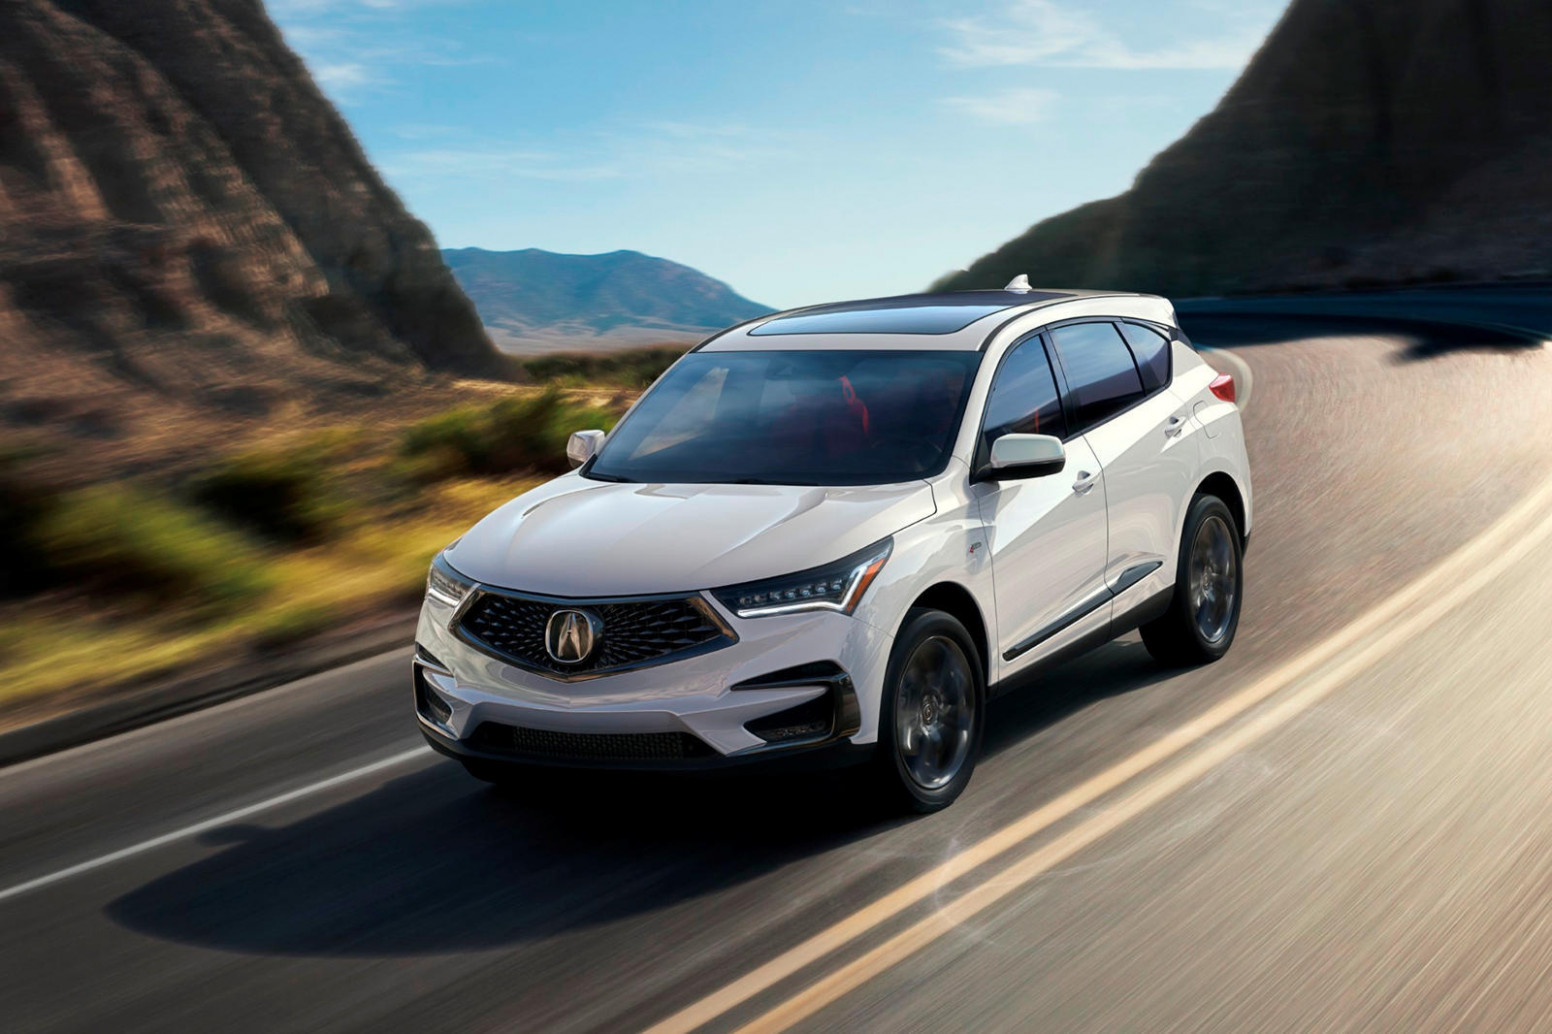 9 Acura RDX Review, Ratings, MPG and Prices | CarIndigo.com